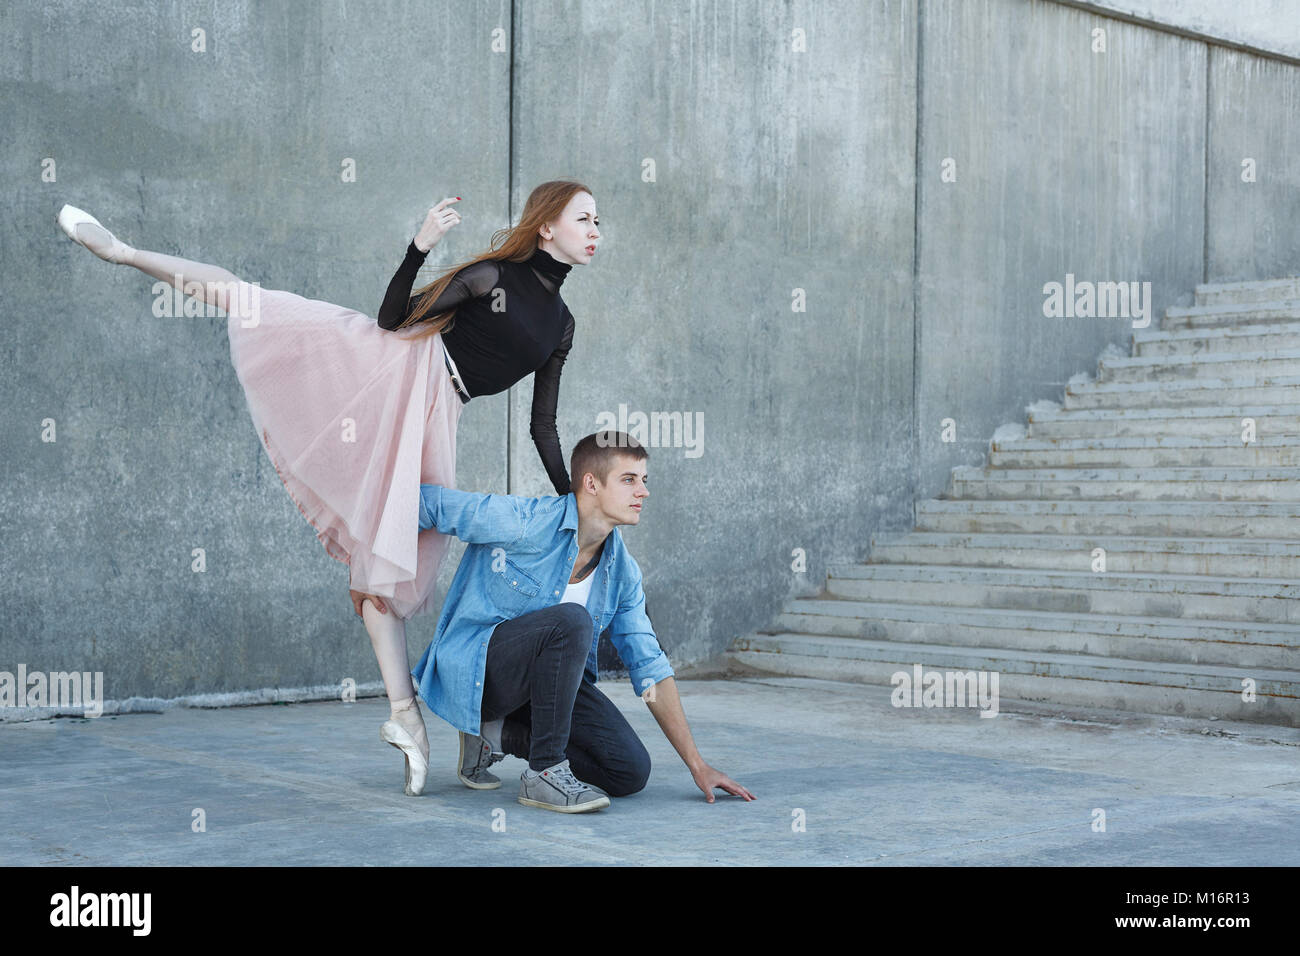 Slender ballerina dances with a modern dancer. Dating lovers. Performance in the streets of the city. Stock Photo